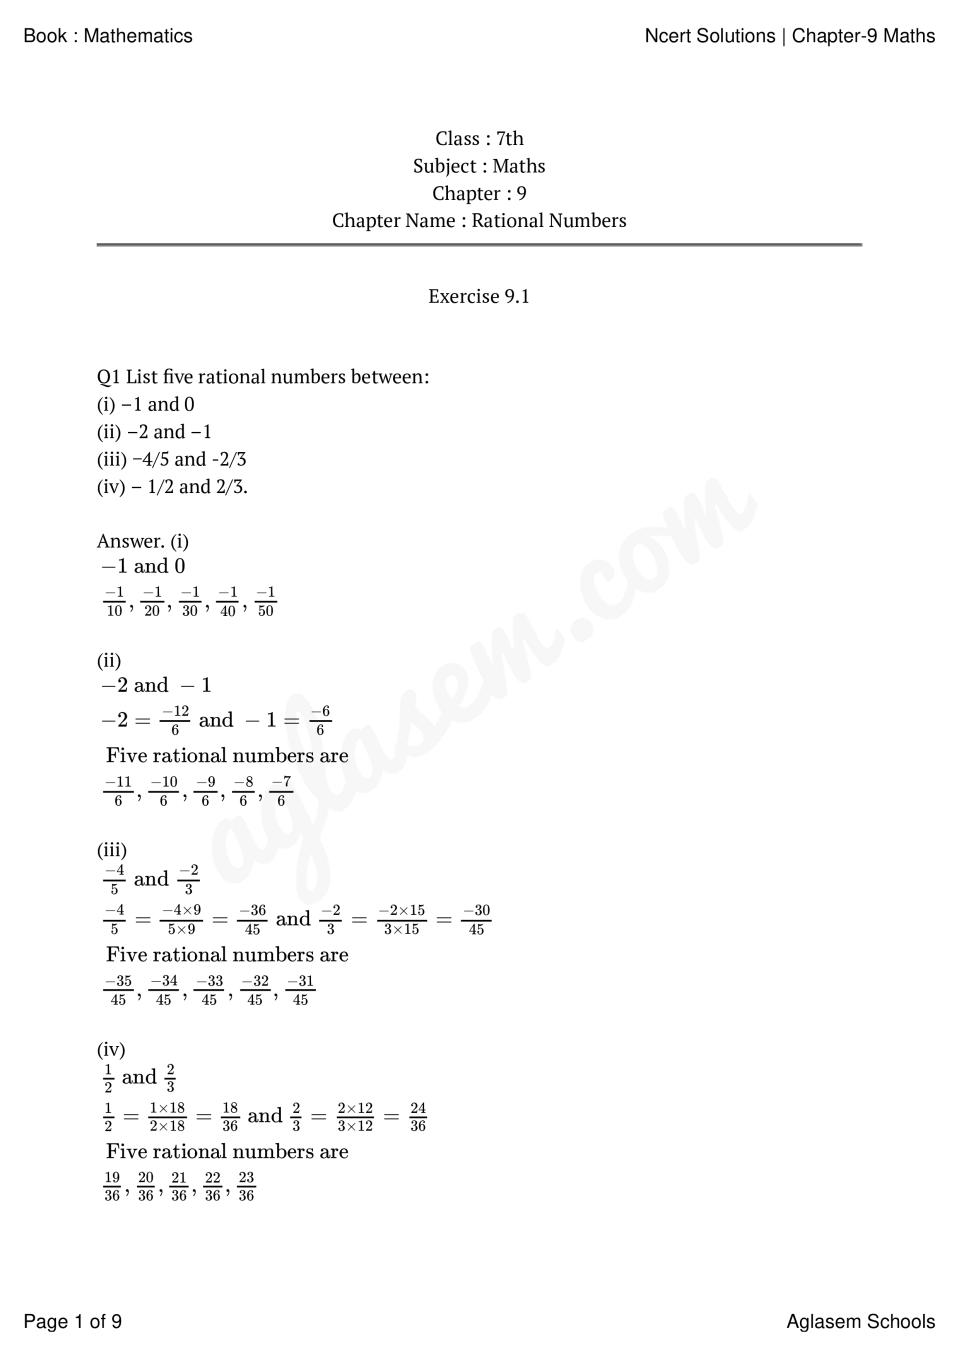 medium resolution of NCERT Solutions for Class 7 Maths Chapter 9 Rational Numbers   AglaSem  Schools